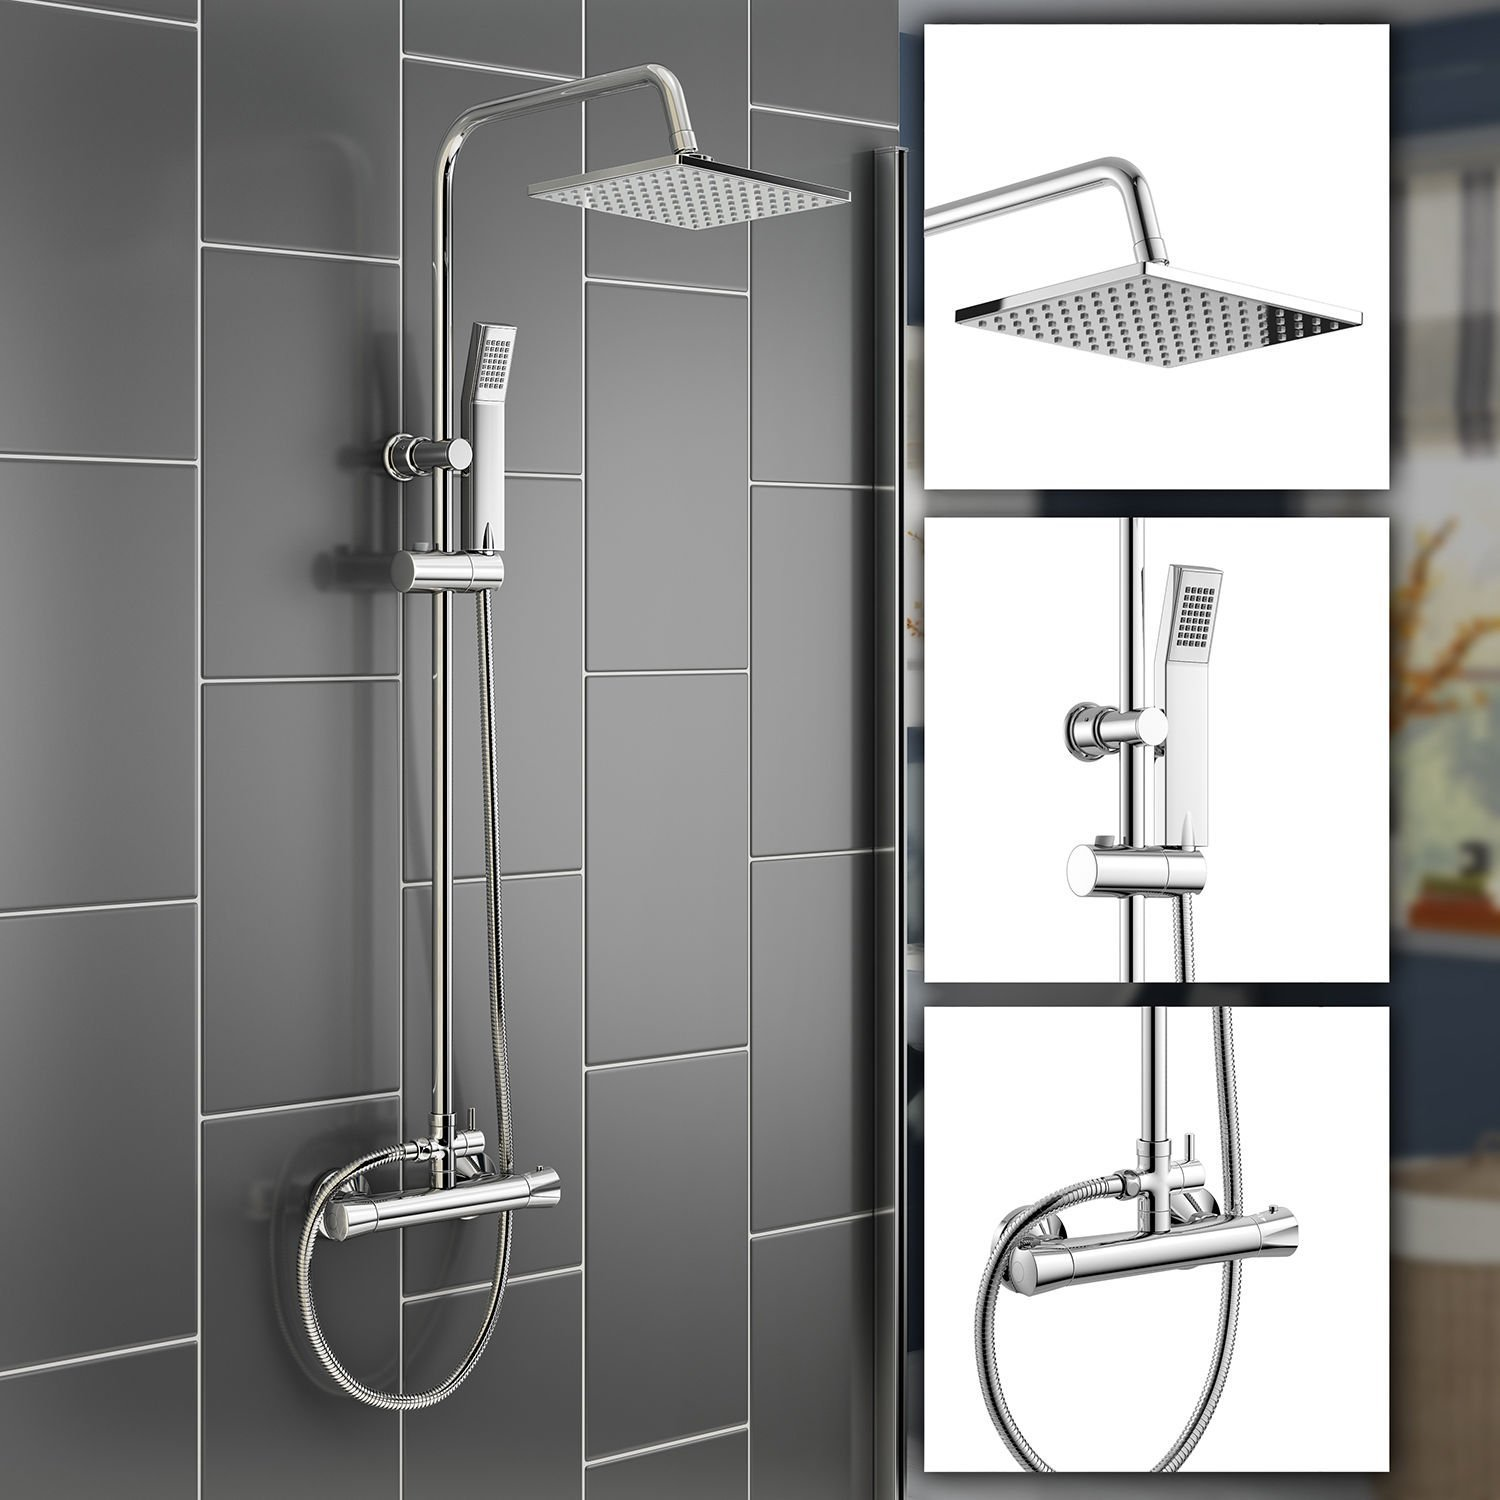 en chrome function single p moen in hand the shower home slide with bar